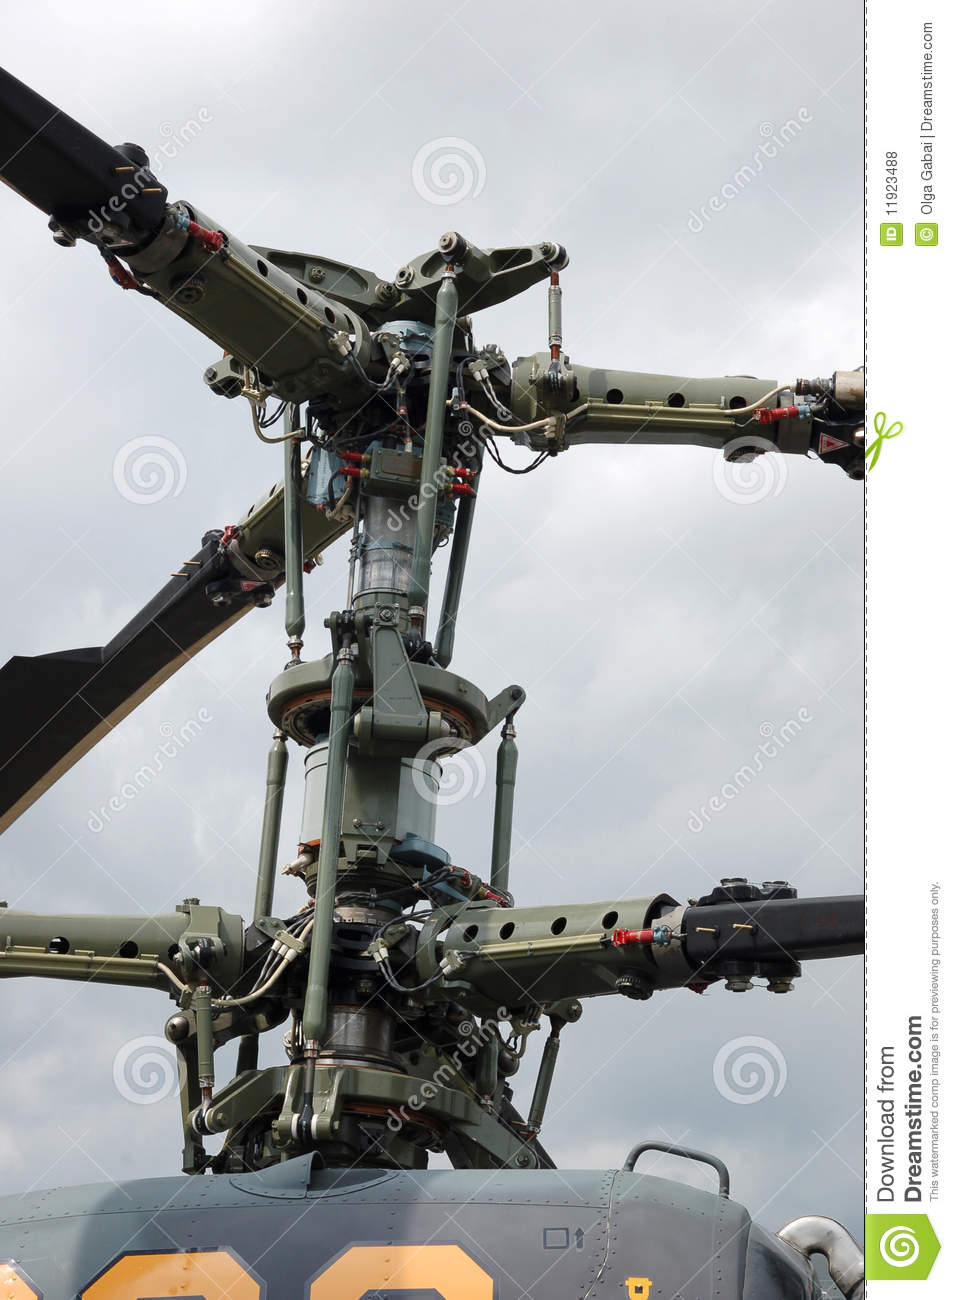 coaxial helicopter with Royalty Free Stock Photos Kamov Helicopter Fragment Image11923488 on Bell V 280 Valor First Flight besides Watch further Air 504a further The Fastest Helicopter On Earth also Stealth Black Hawk.